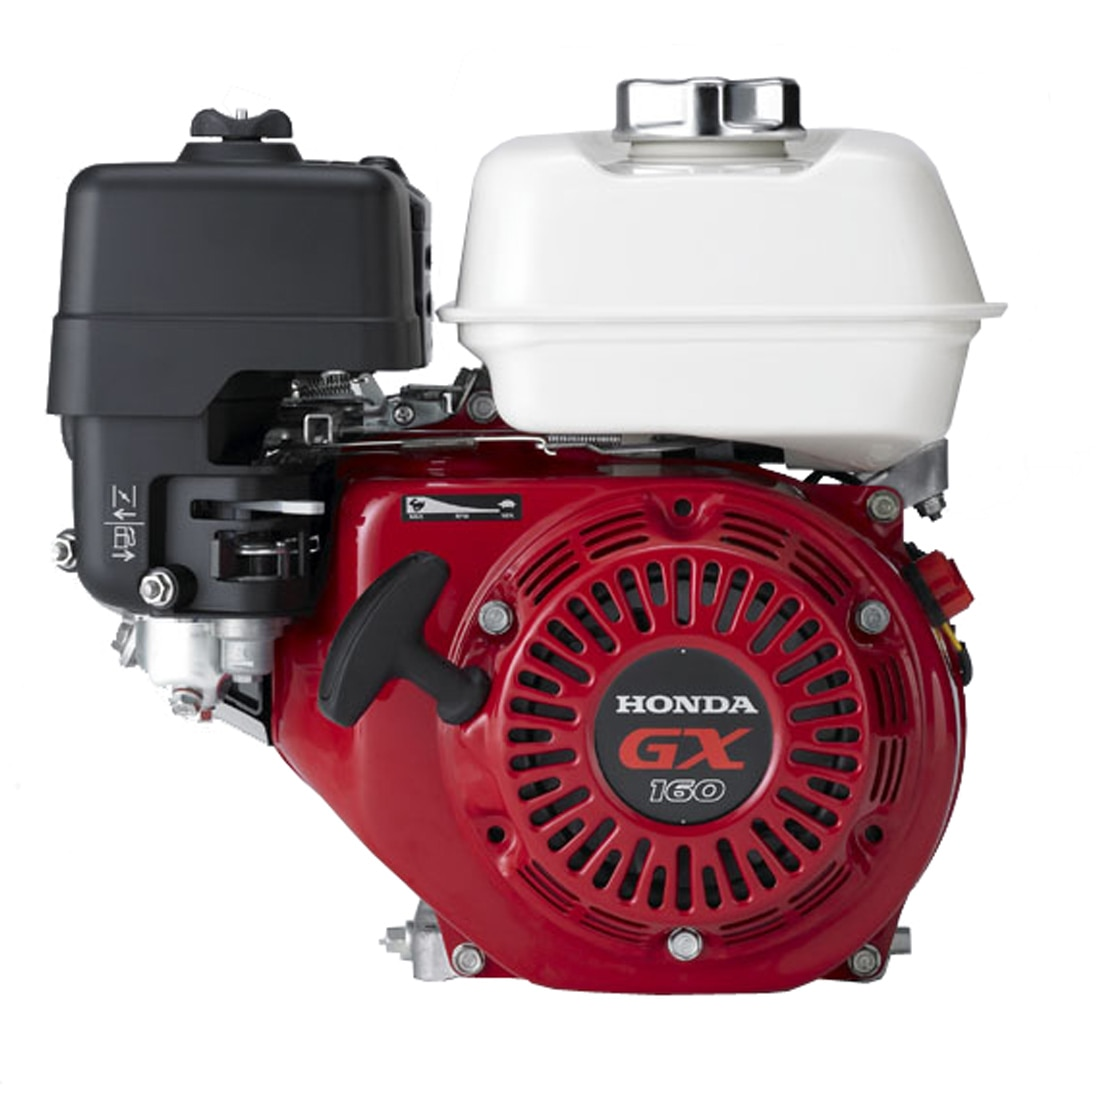 Honda Engines | Small Engine Models, Manuals, Parts, & Resources ...